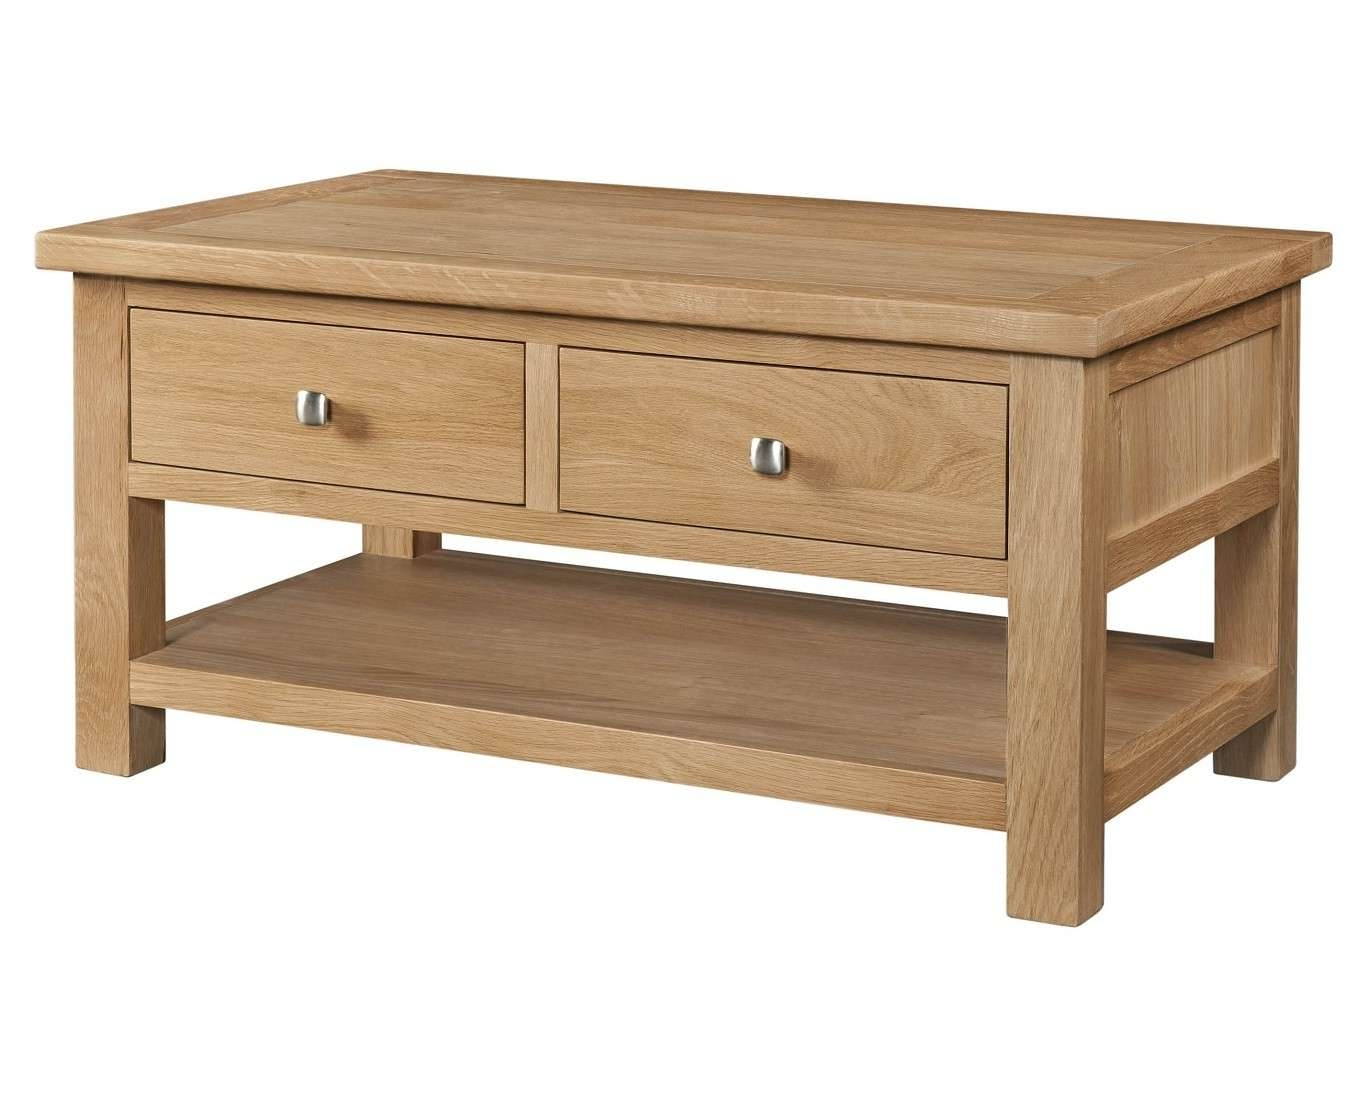 Oak Furniture Uk In Well Liked Light Oak Coffee Tables (View 13 of 20)